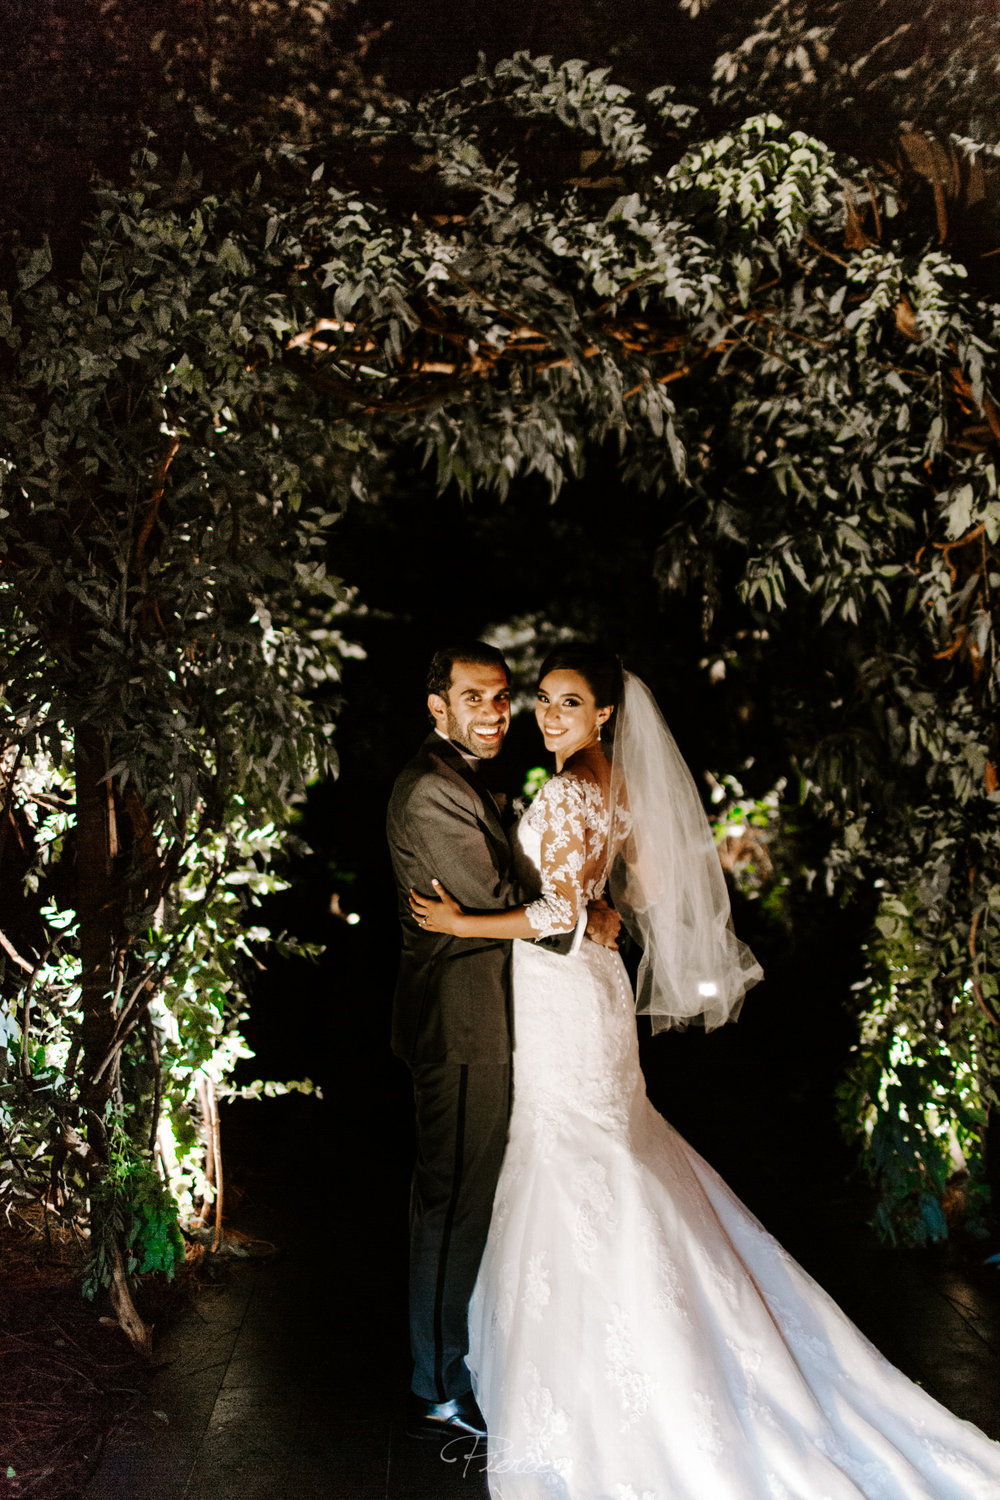 fotografia-de-boda-valle-de-bravo-mexico-rosmarino-pierce-weddings-0284.JPG